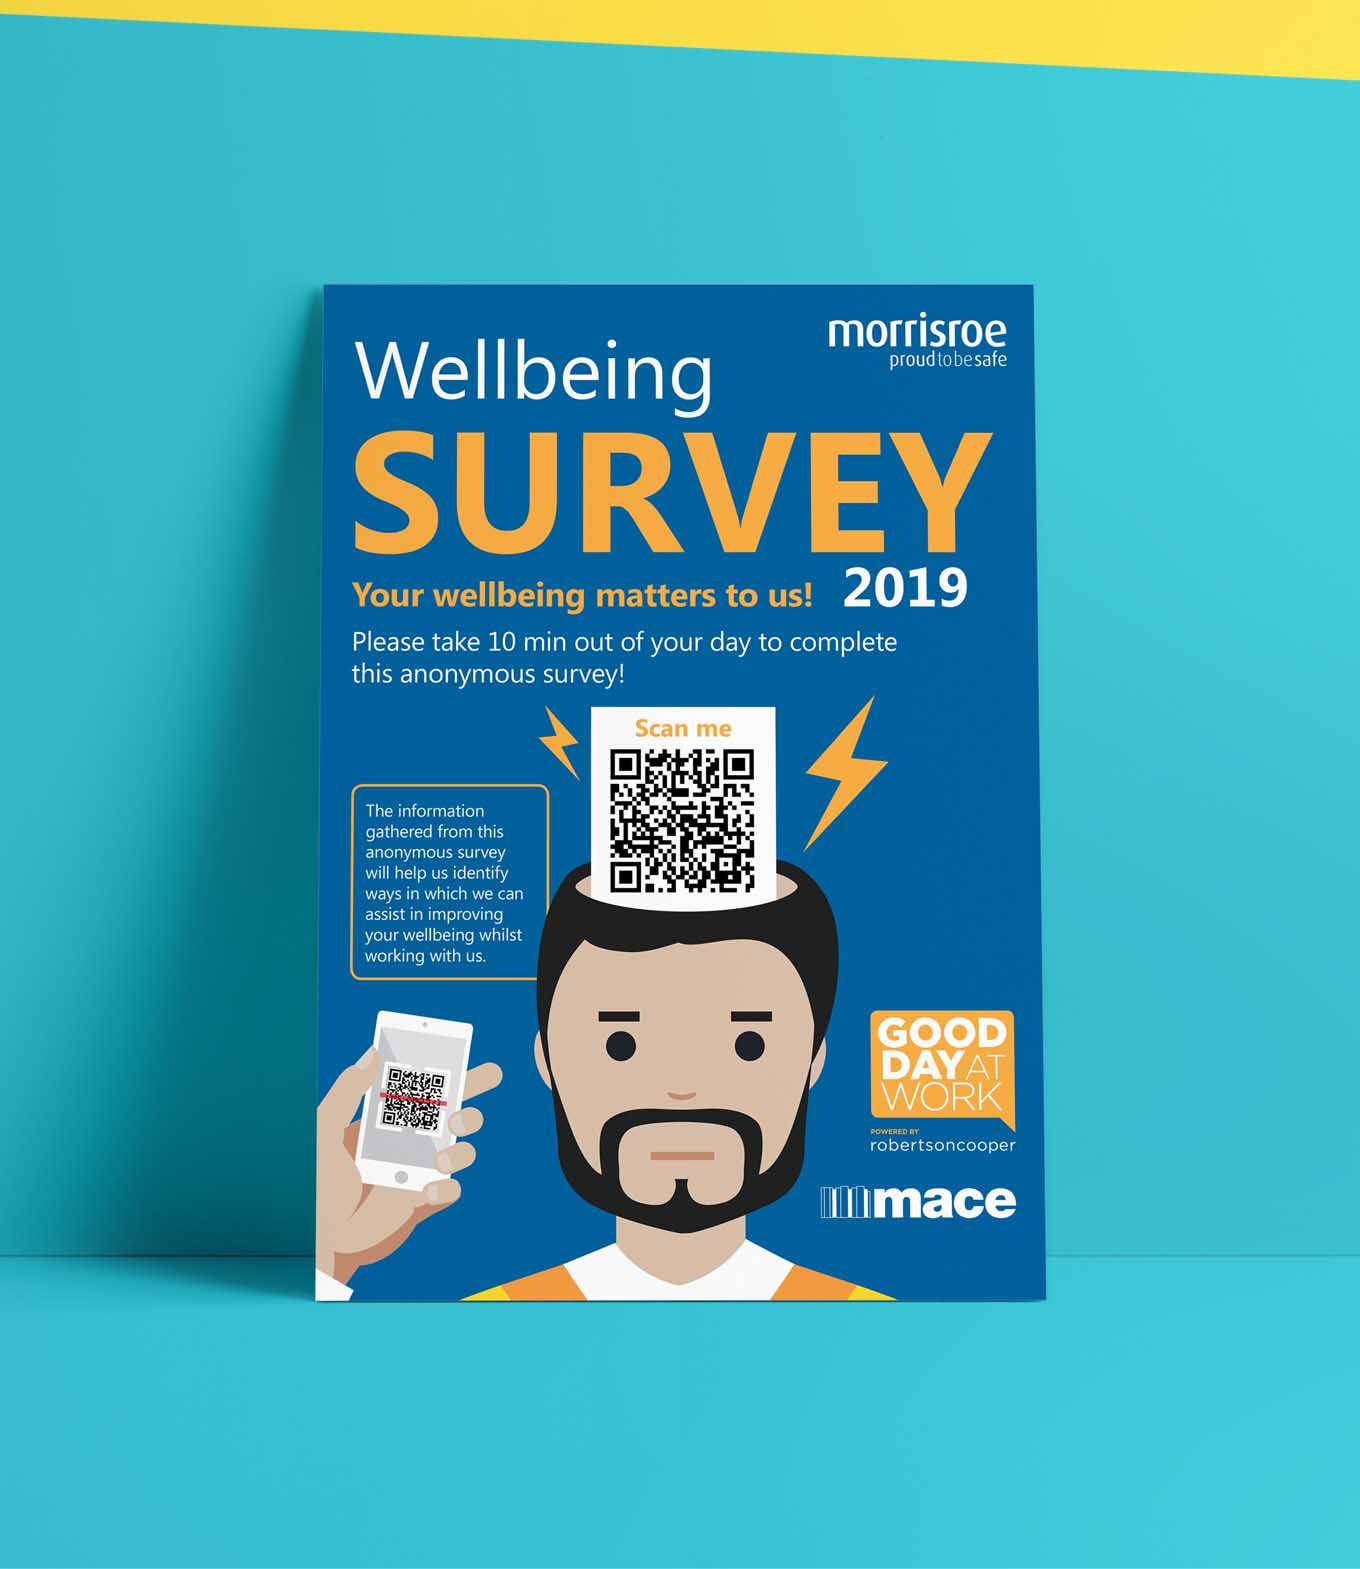 morrisroe wellbeing survey